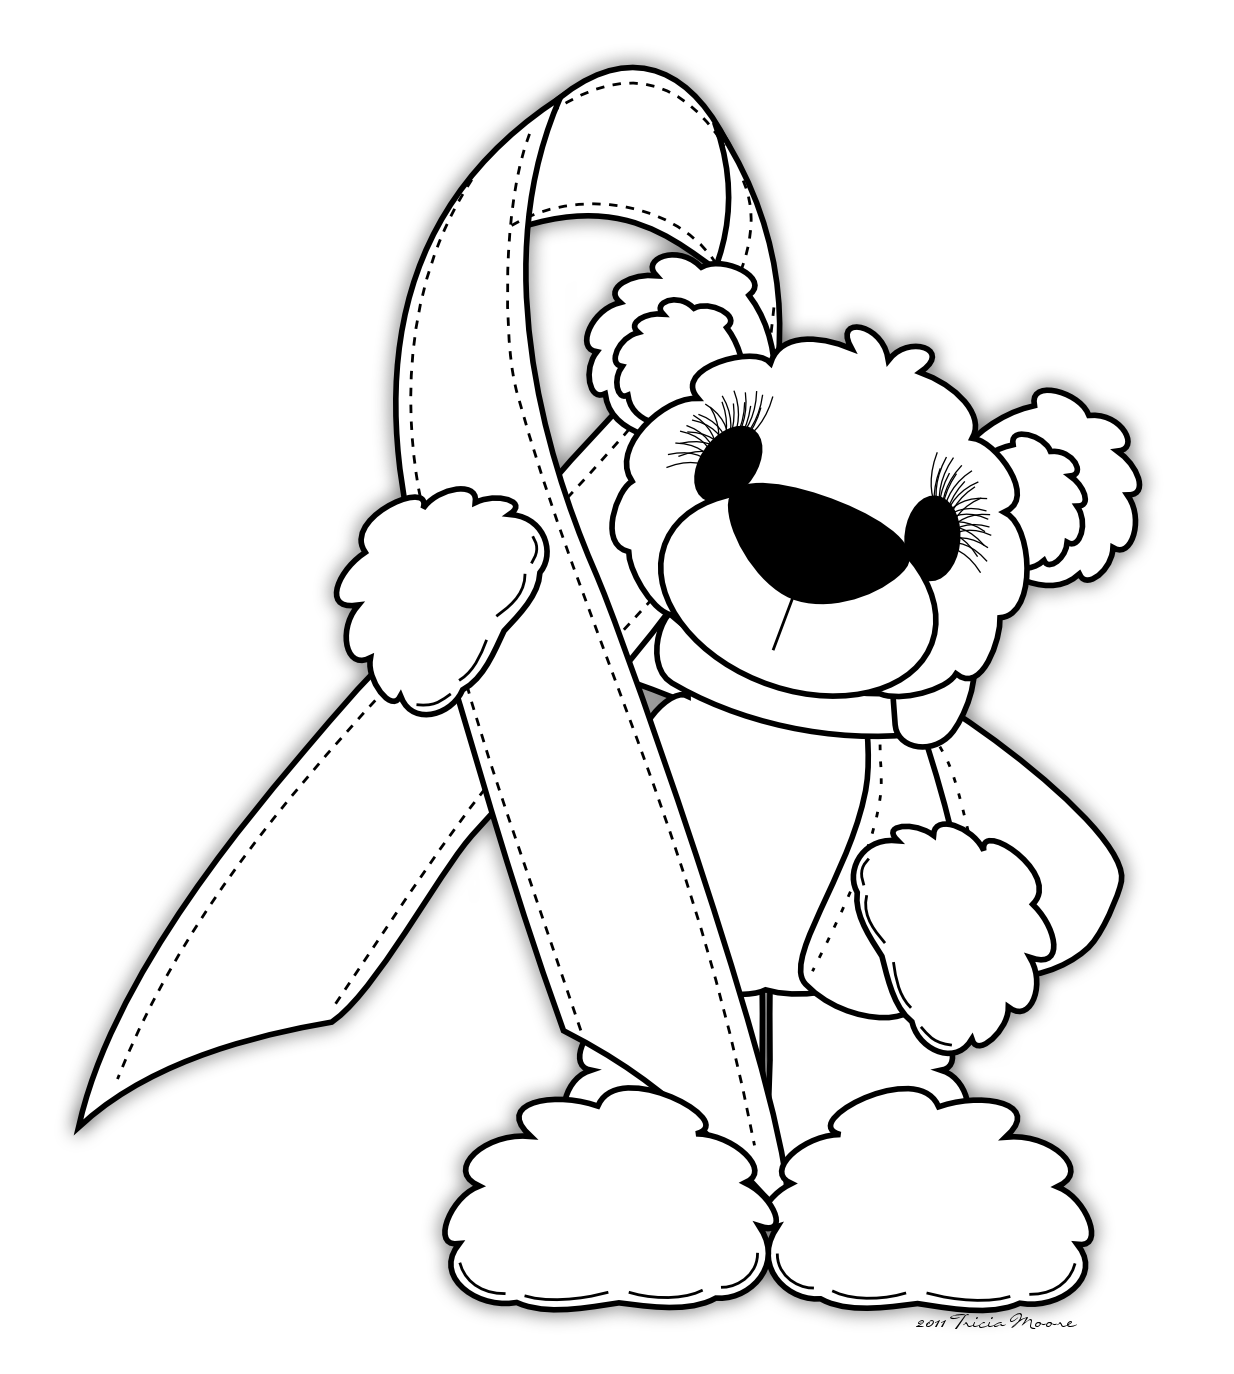 breast cancer awareness coloring pages for kids | Coloring Pages For Breast Cancer Ribbon - Coloring Home